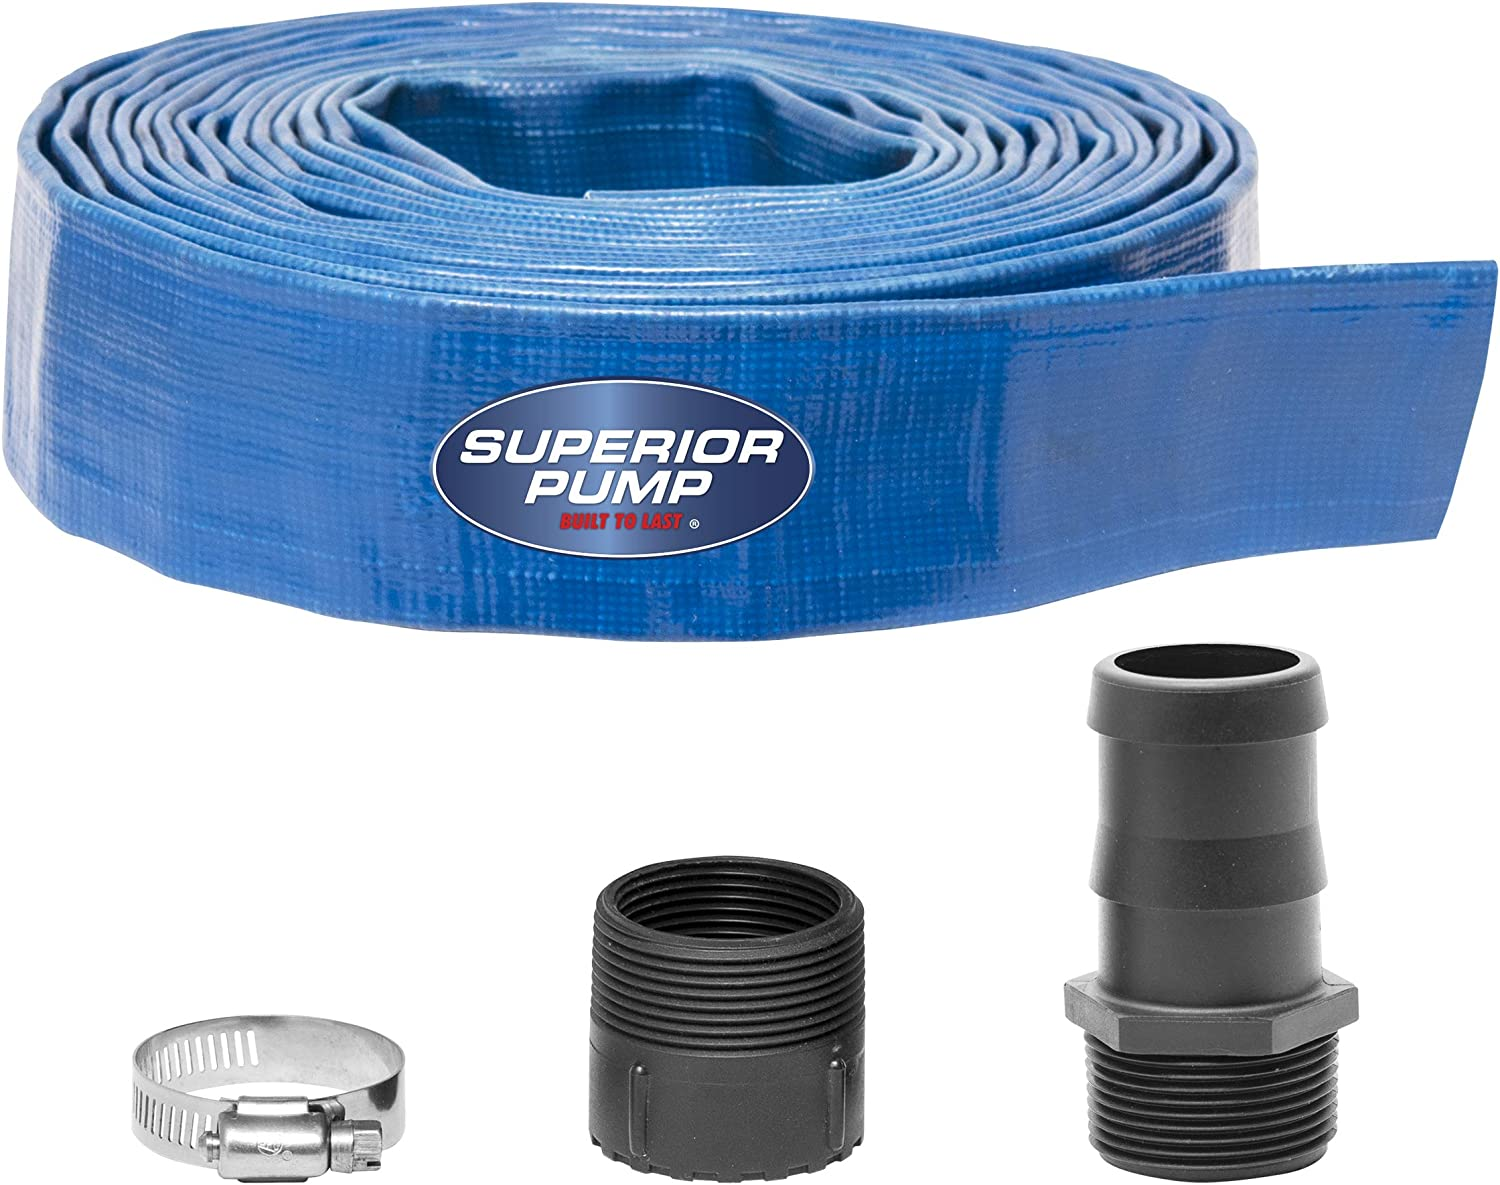 Superior Pump 99621 Lay-Flat Discharge Hose Kit, 1-1/2-Inch by 25-foot (5, 4-Piece